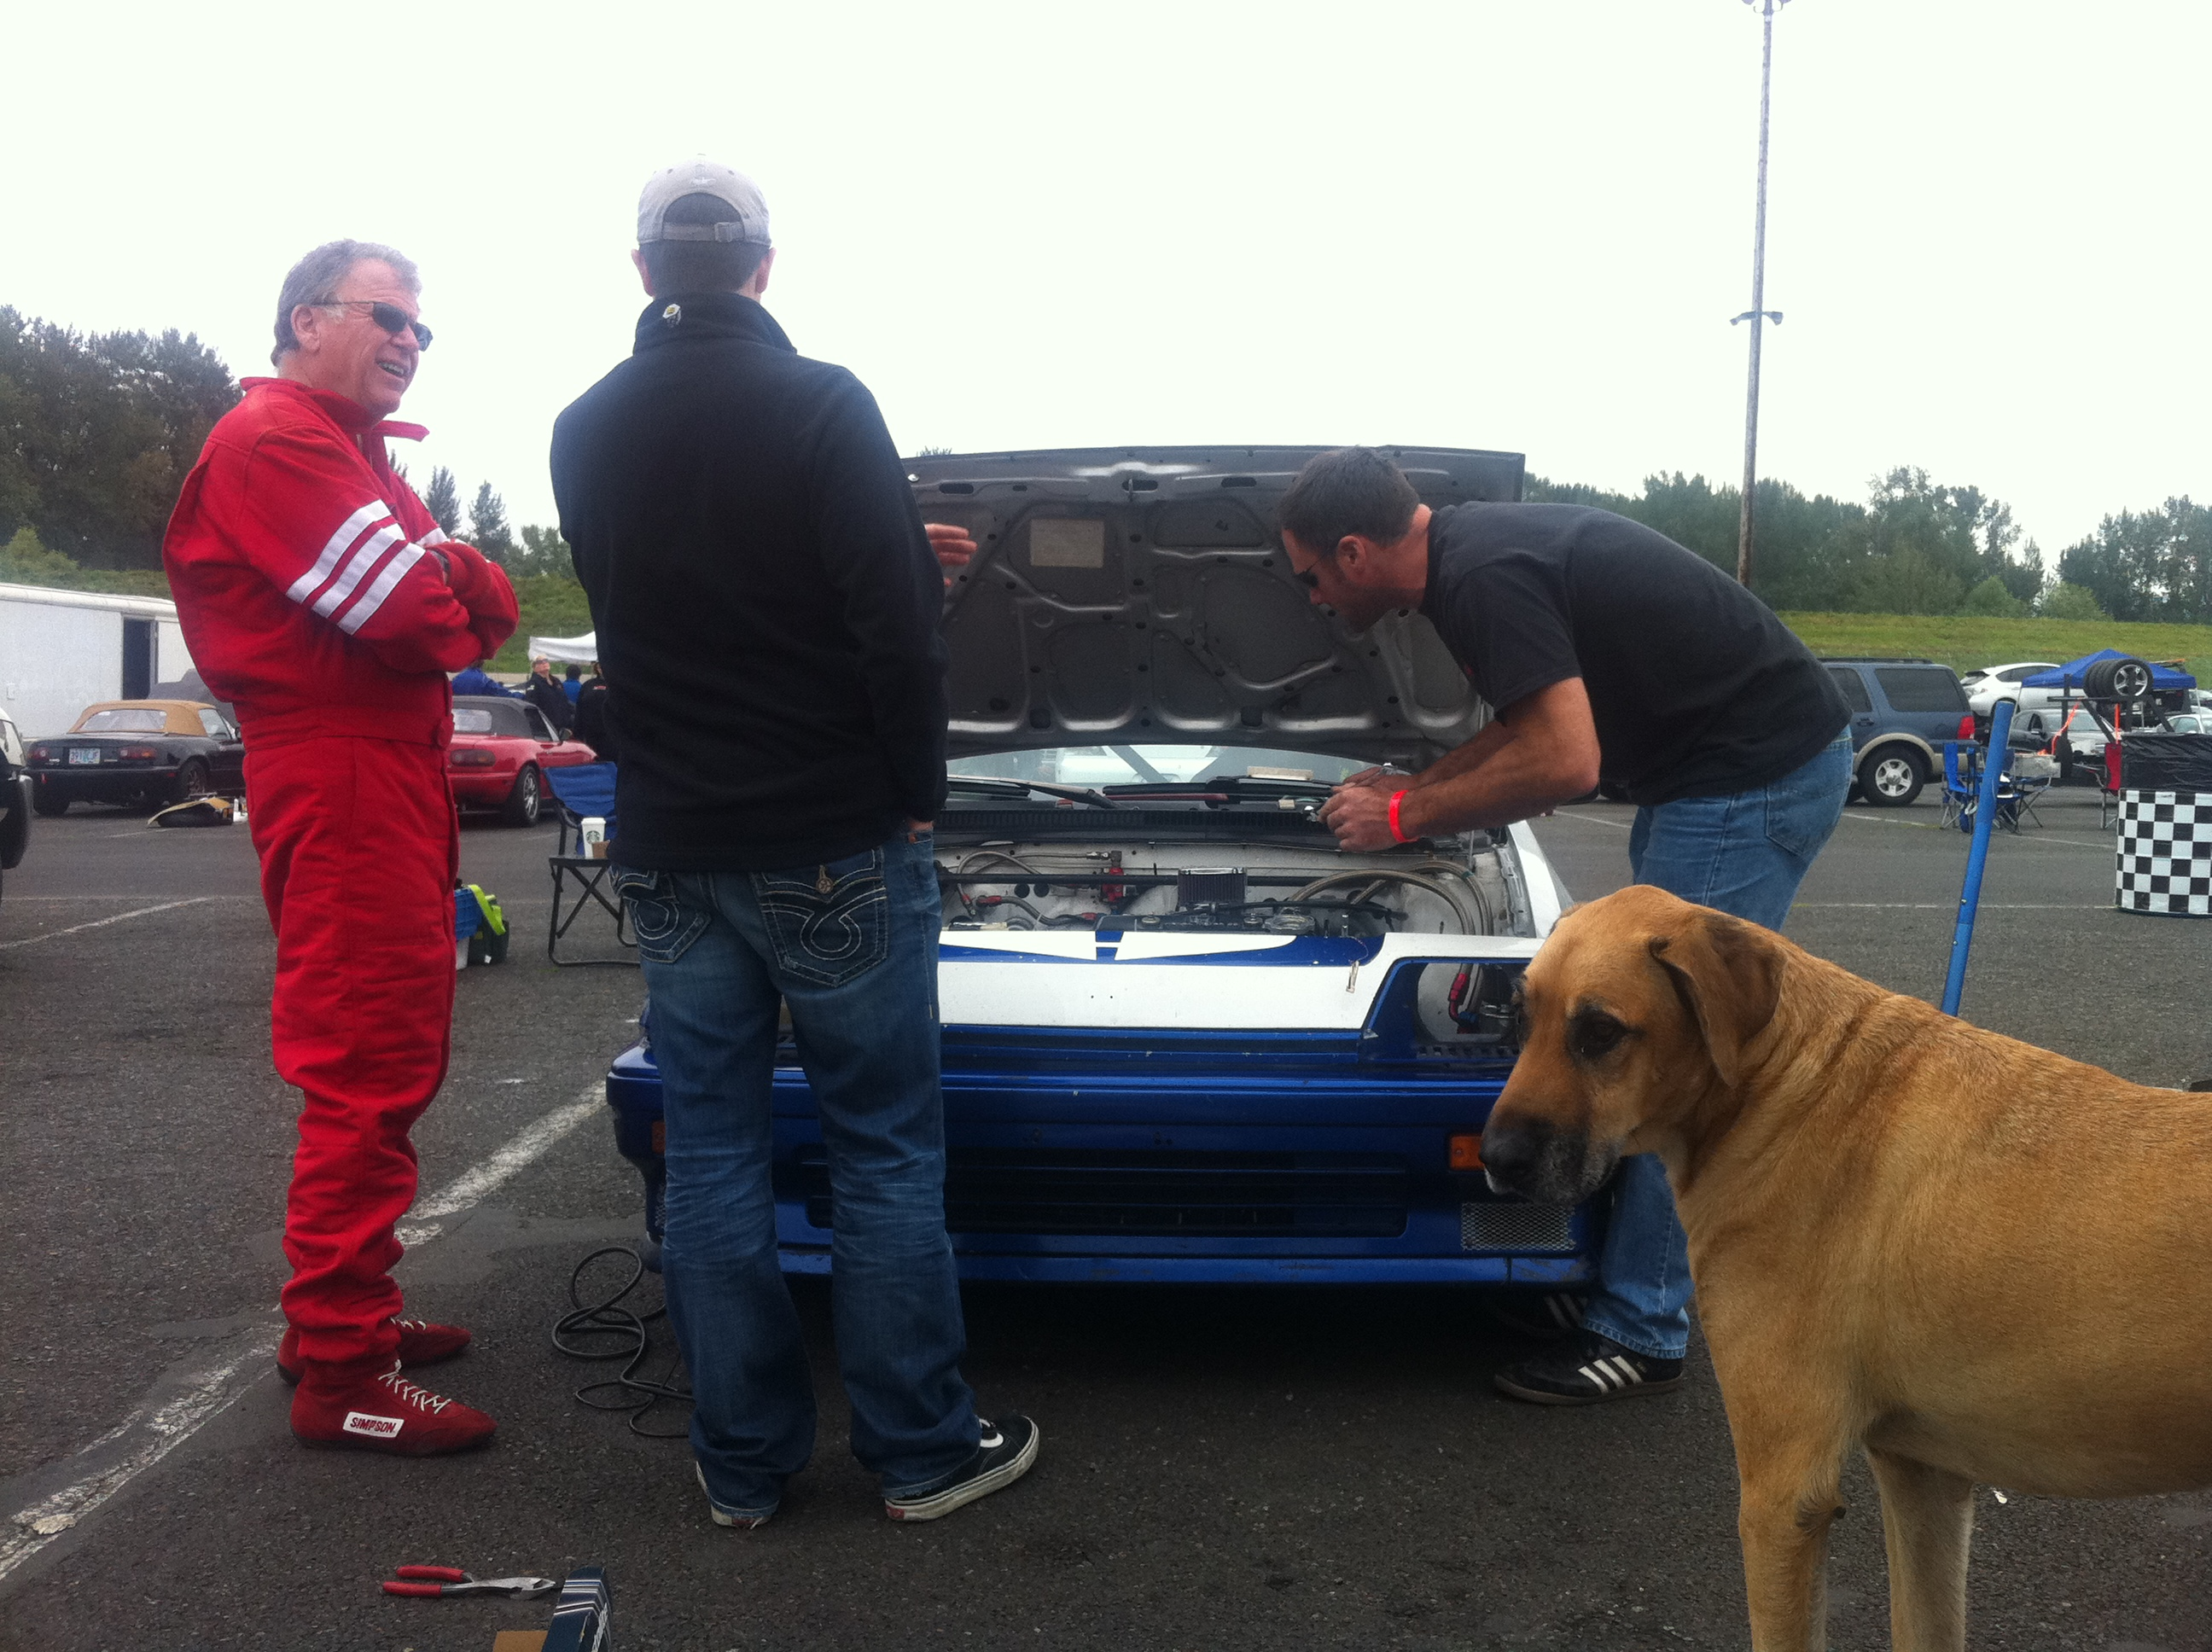 My Chumpcar crew tuning our ride ahead of the big day